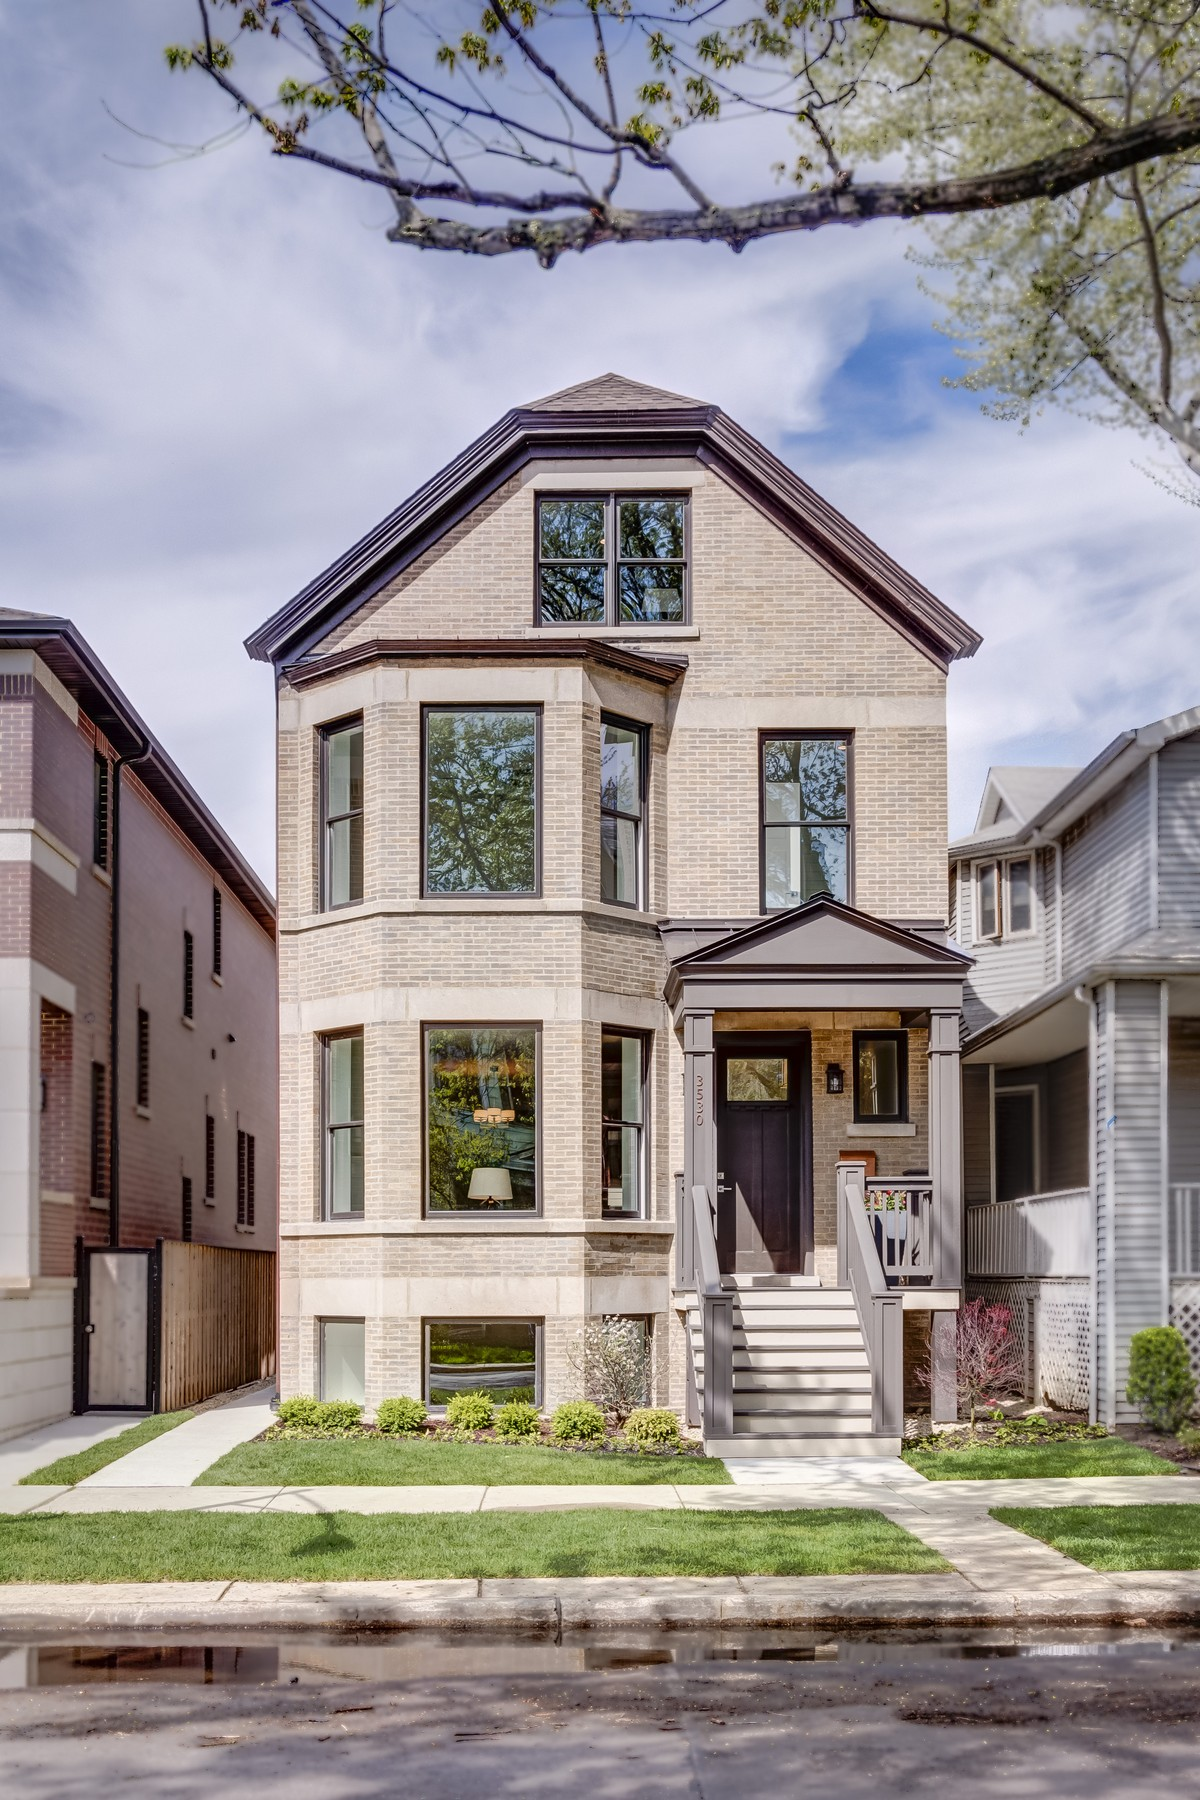 Single Family Home for Sale at Crown Jewel of Roscoe Village! 3530 N Leavitt Street North Center, Chicago, Illinois, 60618 United States